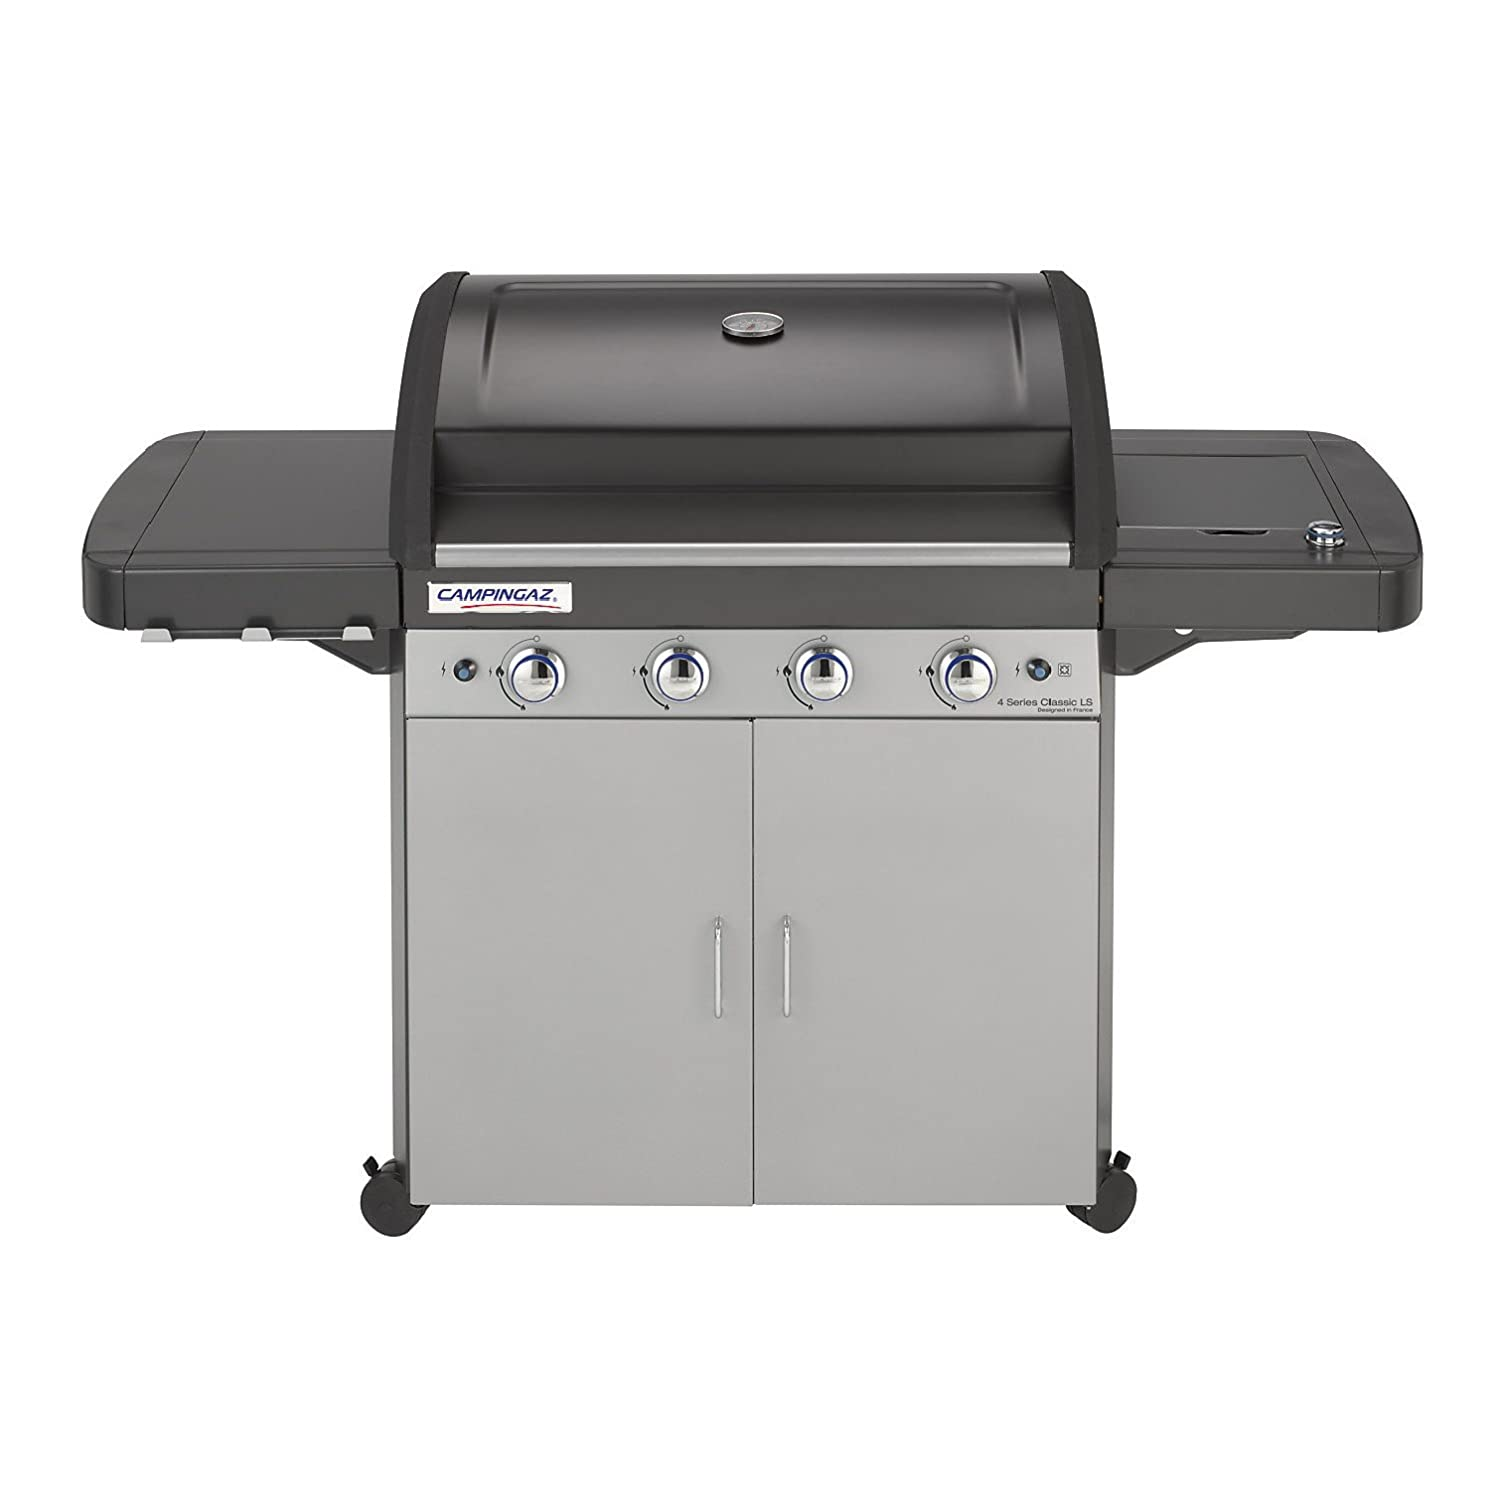 Campingaz 4 Series Classic Ls.Campingaz Gas Bbq 4 Series Classic Ls 4 1 Burner Stainless Steel Gas Barbecue Large Gas Grill With Side Burner Stamped Steel Grid Griddle